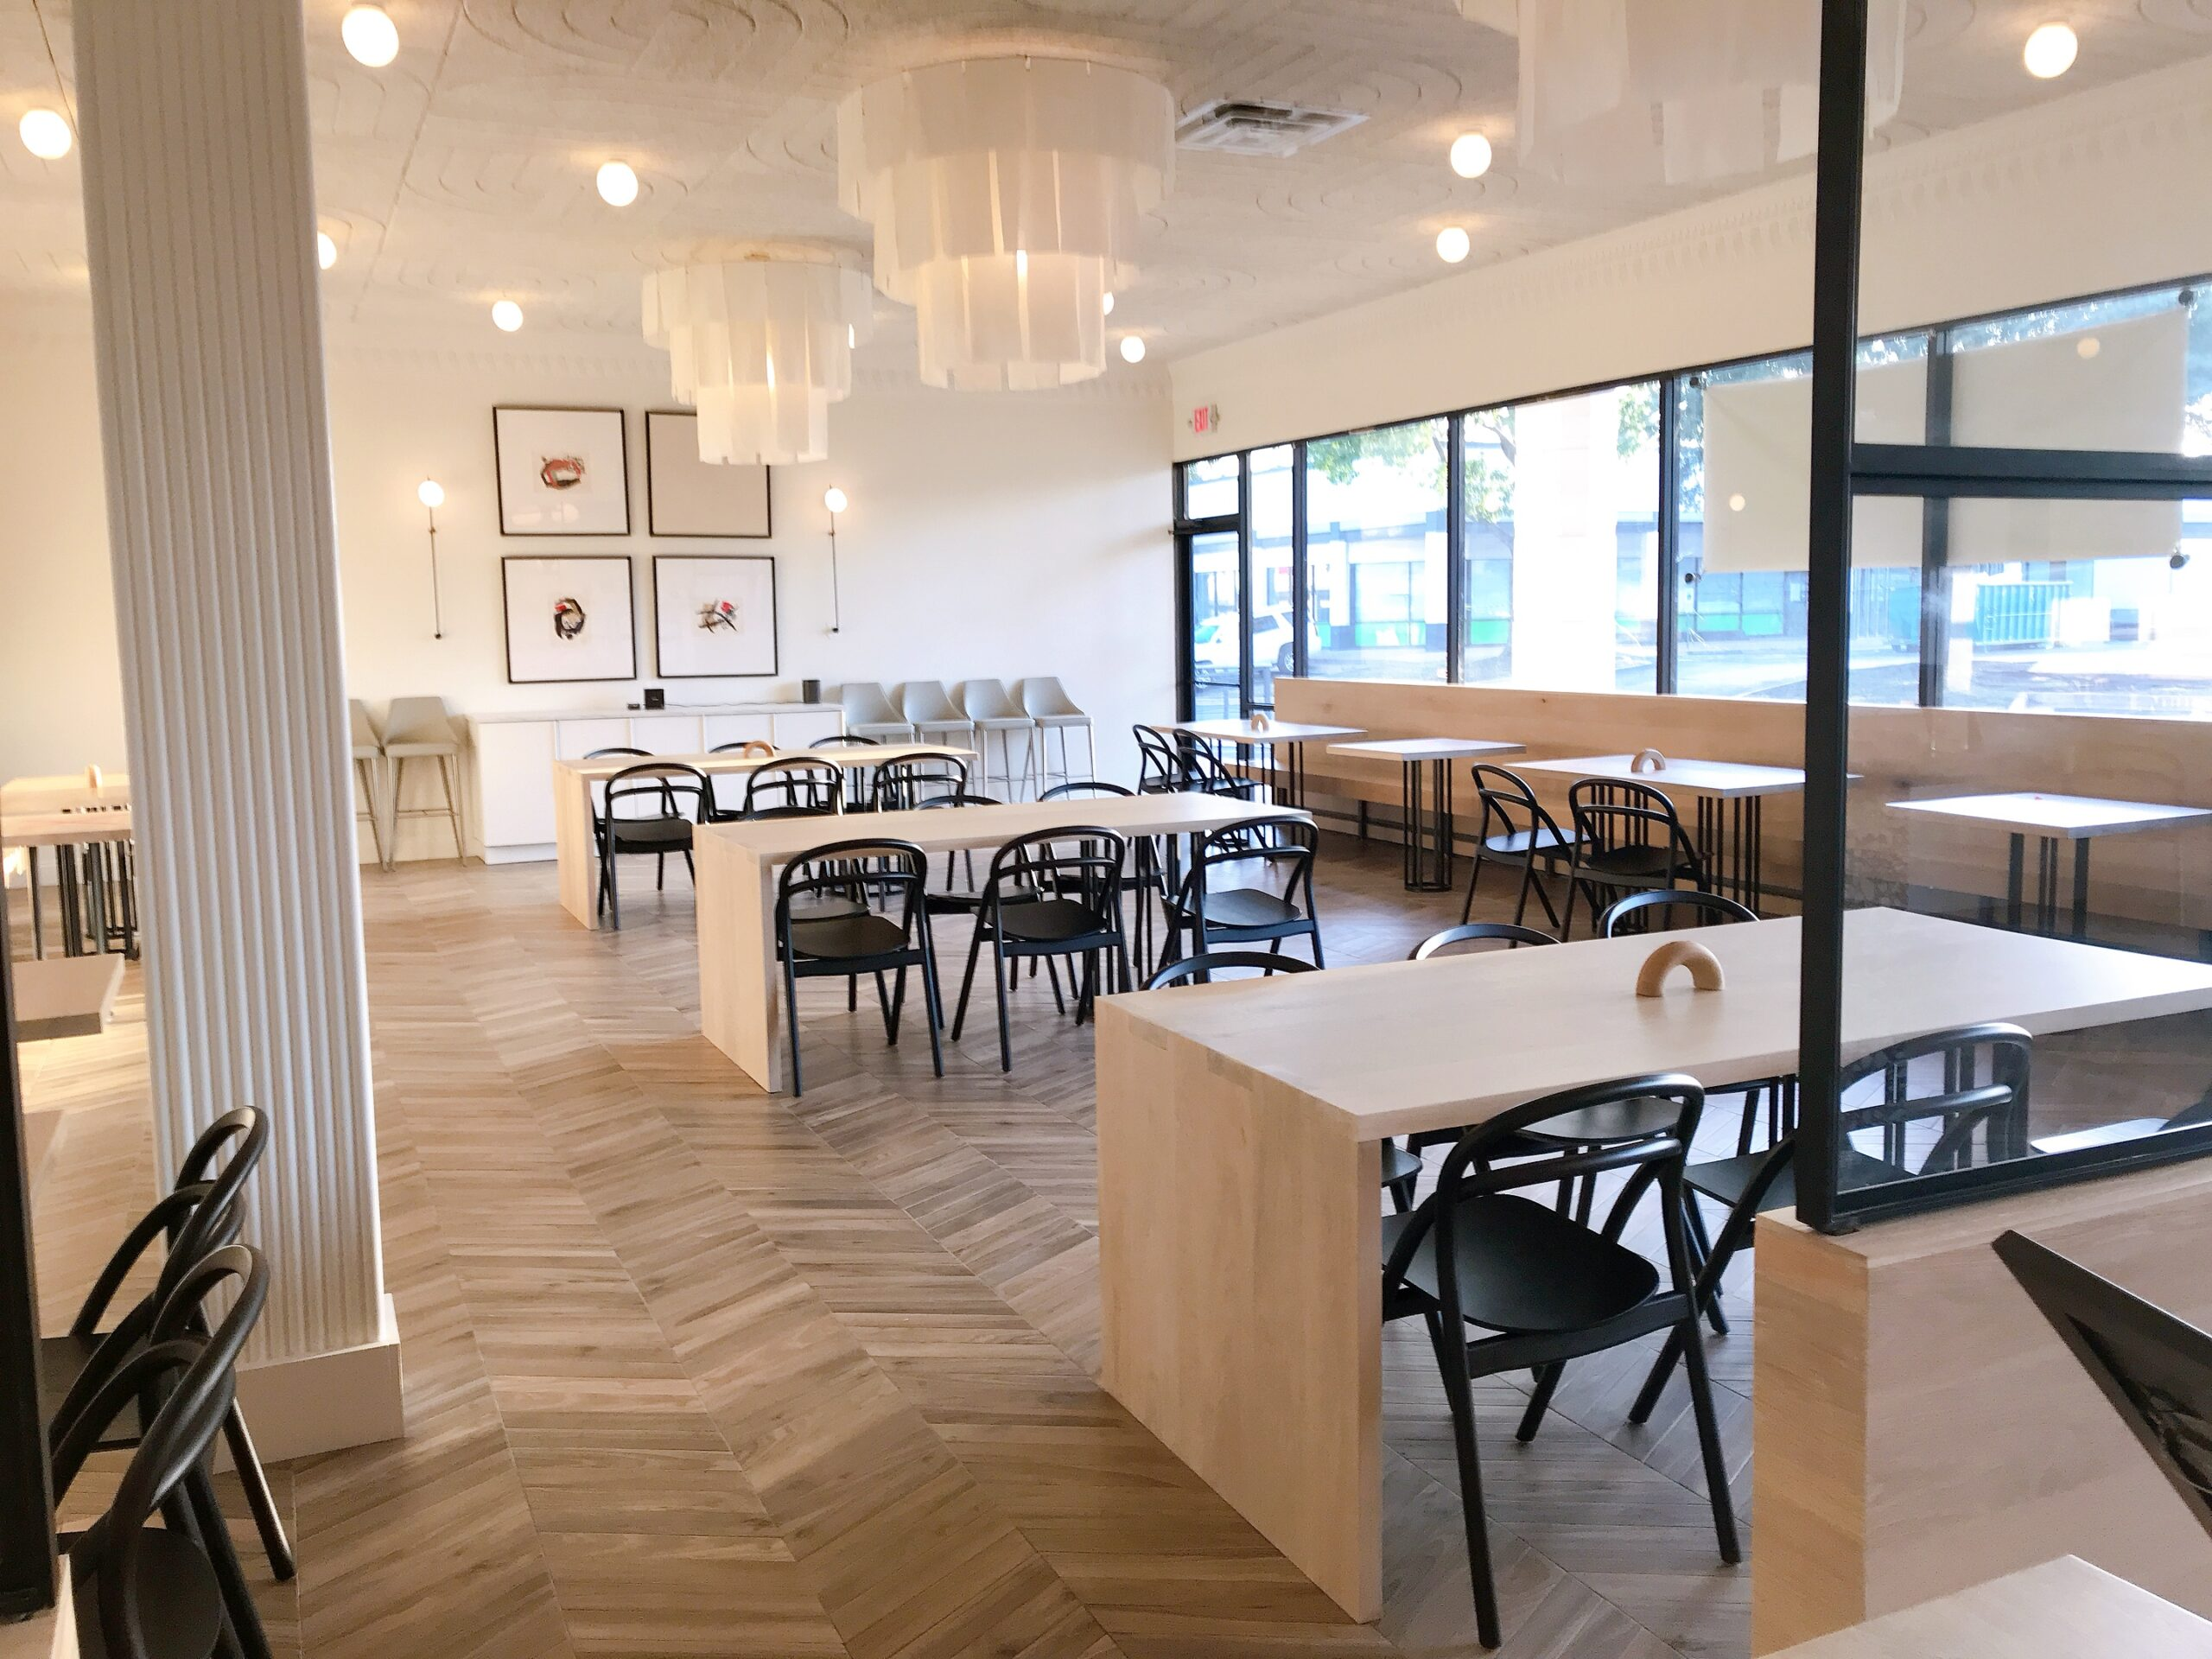 """  """"The skill behind ramen is a practiced art and I wanted the interiors to reflect the craft that goes into the creation of a perfect bowl. The aesthetic of the space takes Japanese modern interiors with a nod to Scandinavian hygge and French architecture to create an inviting space. An aside cocktail bar gives the space intimacy and a comfortable area for diners to relax before being seated.""""                                           -Matt Tsang, Lead Designer & Interior Visionary"""